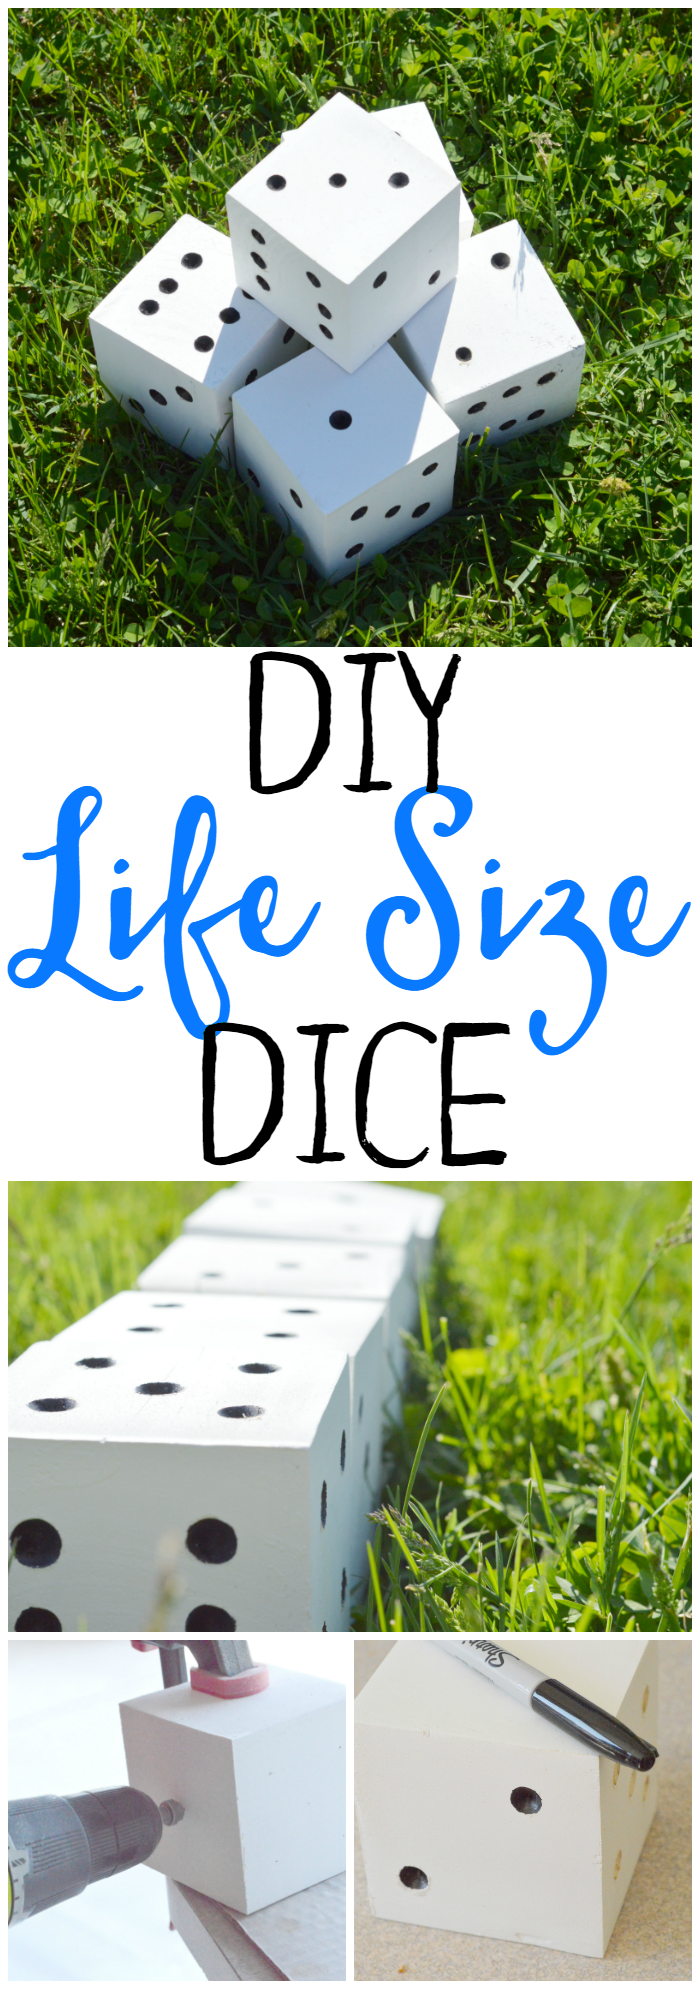 These DIY Life Size Dice are great for any game that involves dice! They are easy to make and perfect for kids, families, youth groups, etc.